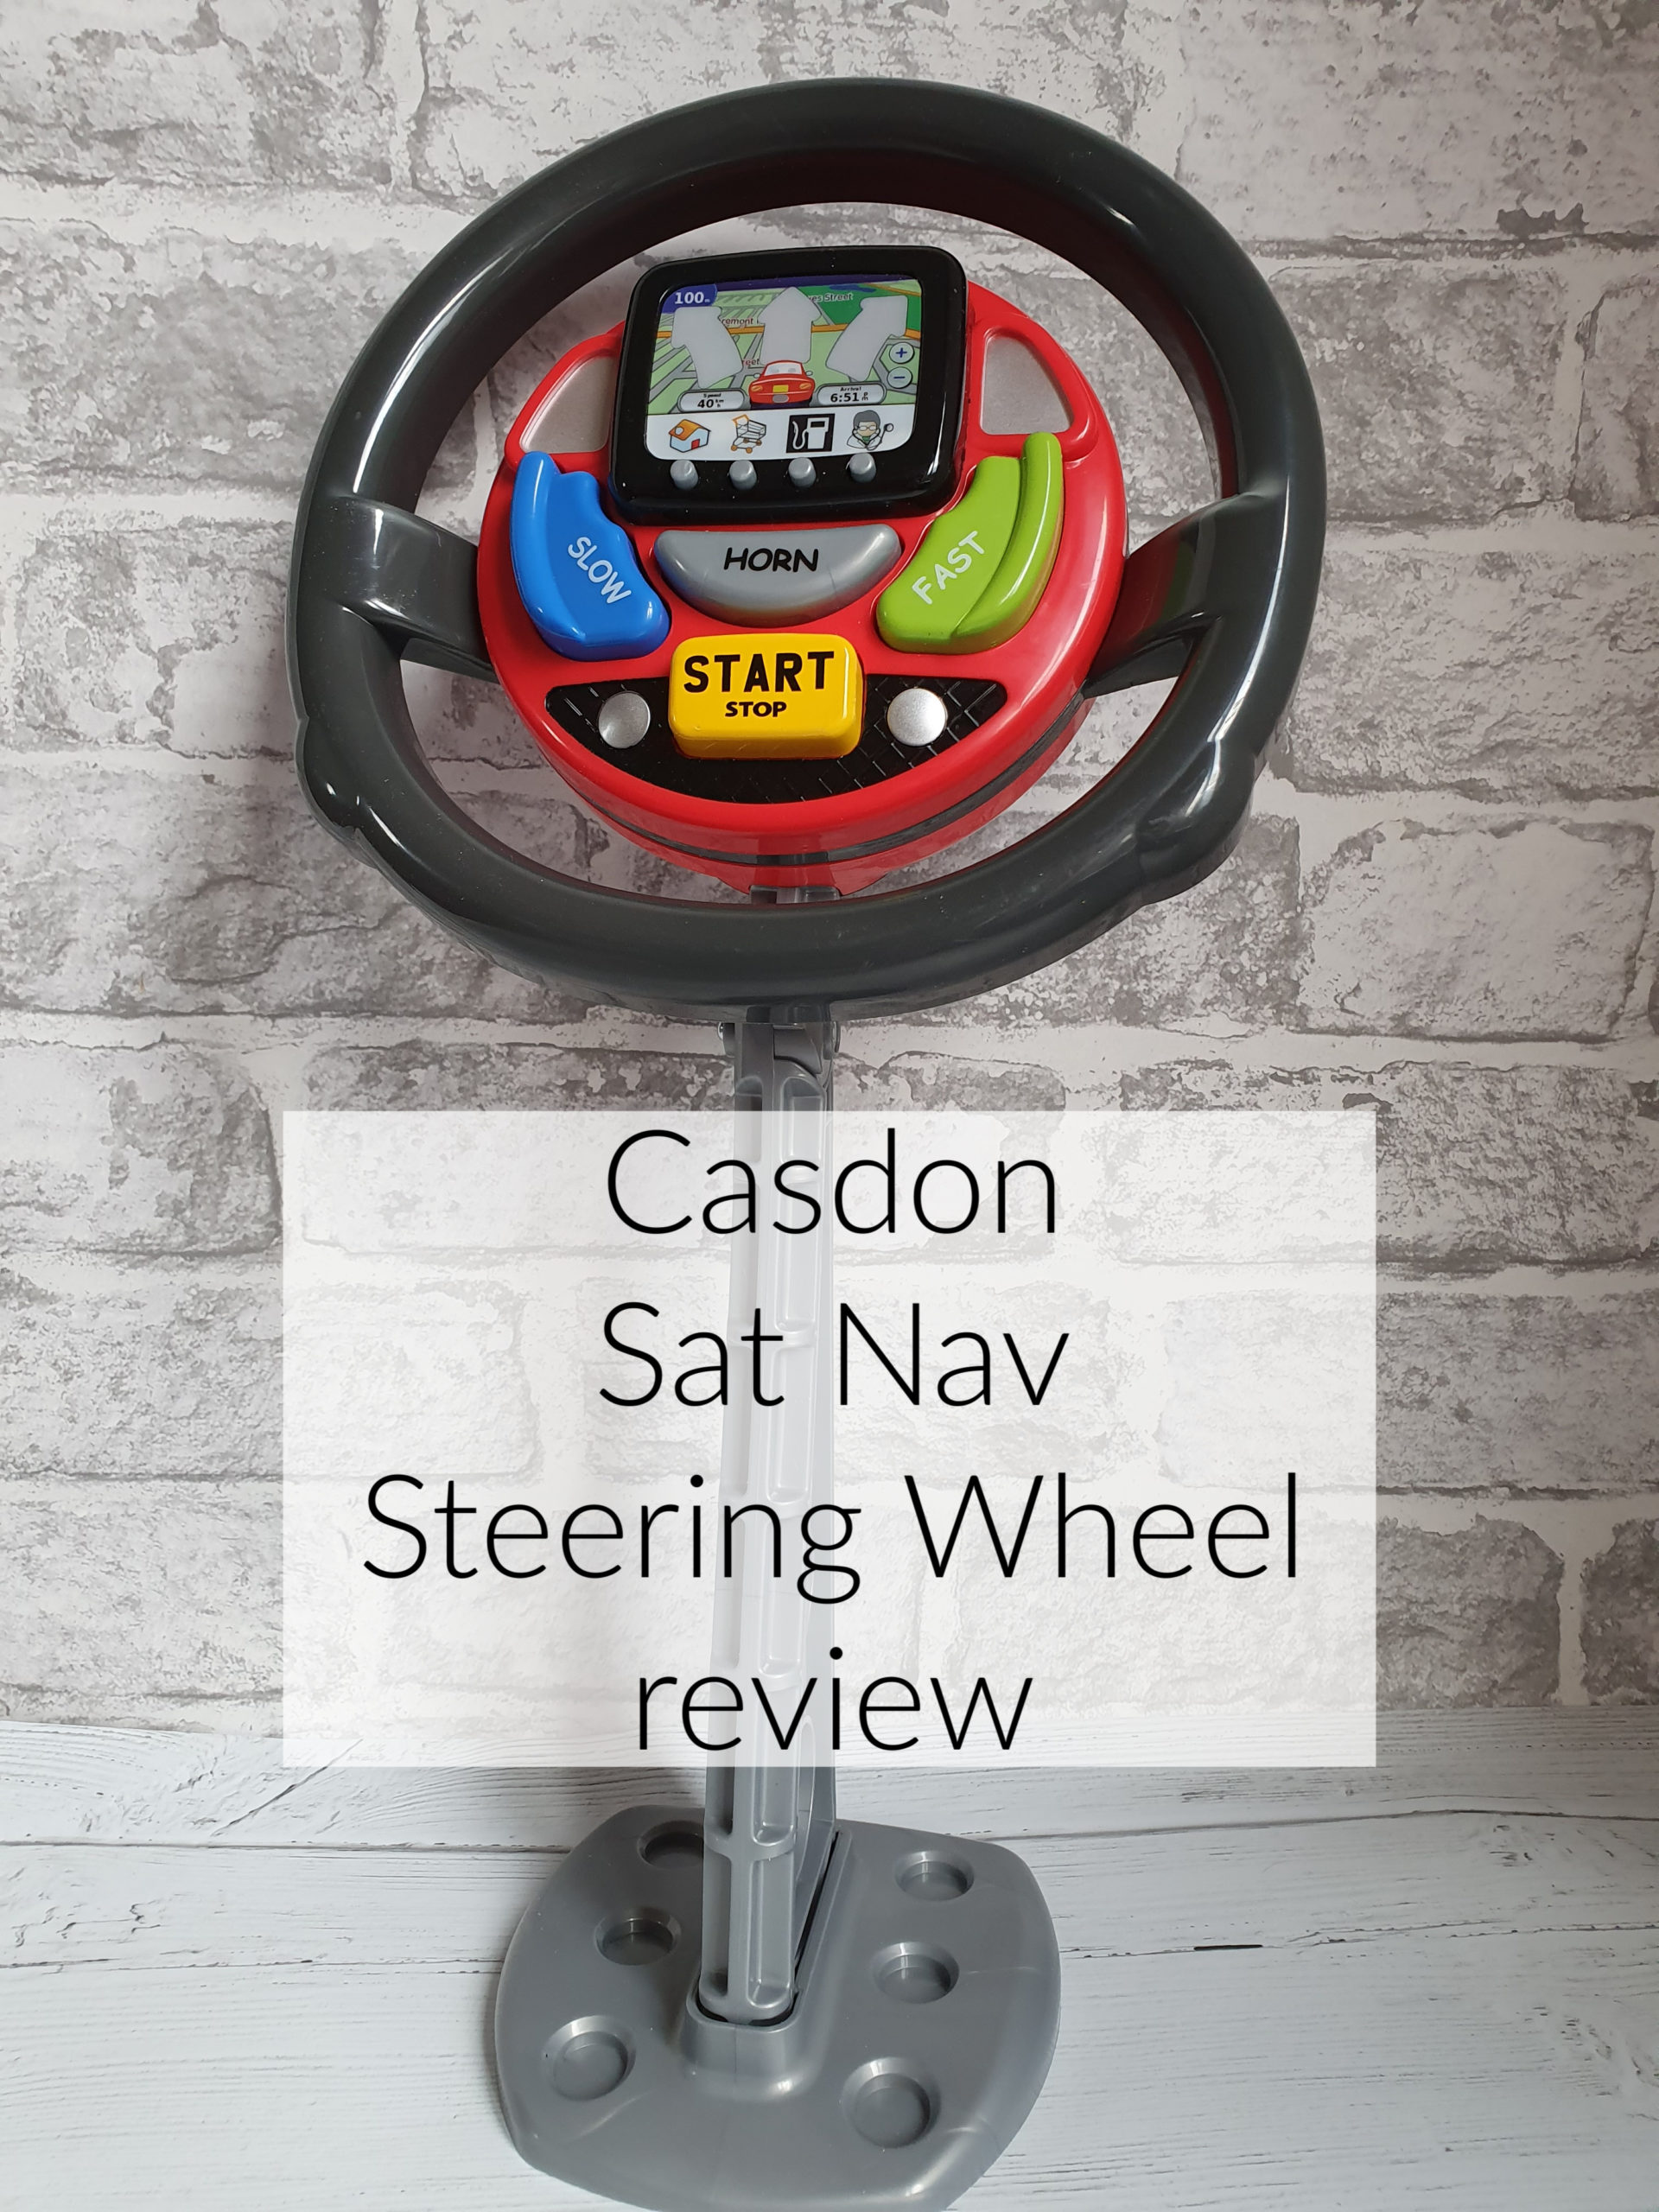 Casdon Sat Nav Steering Wheel review